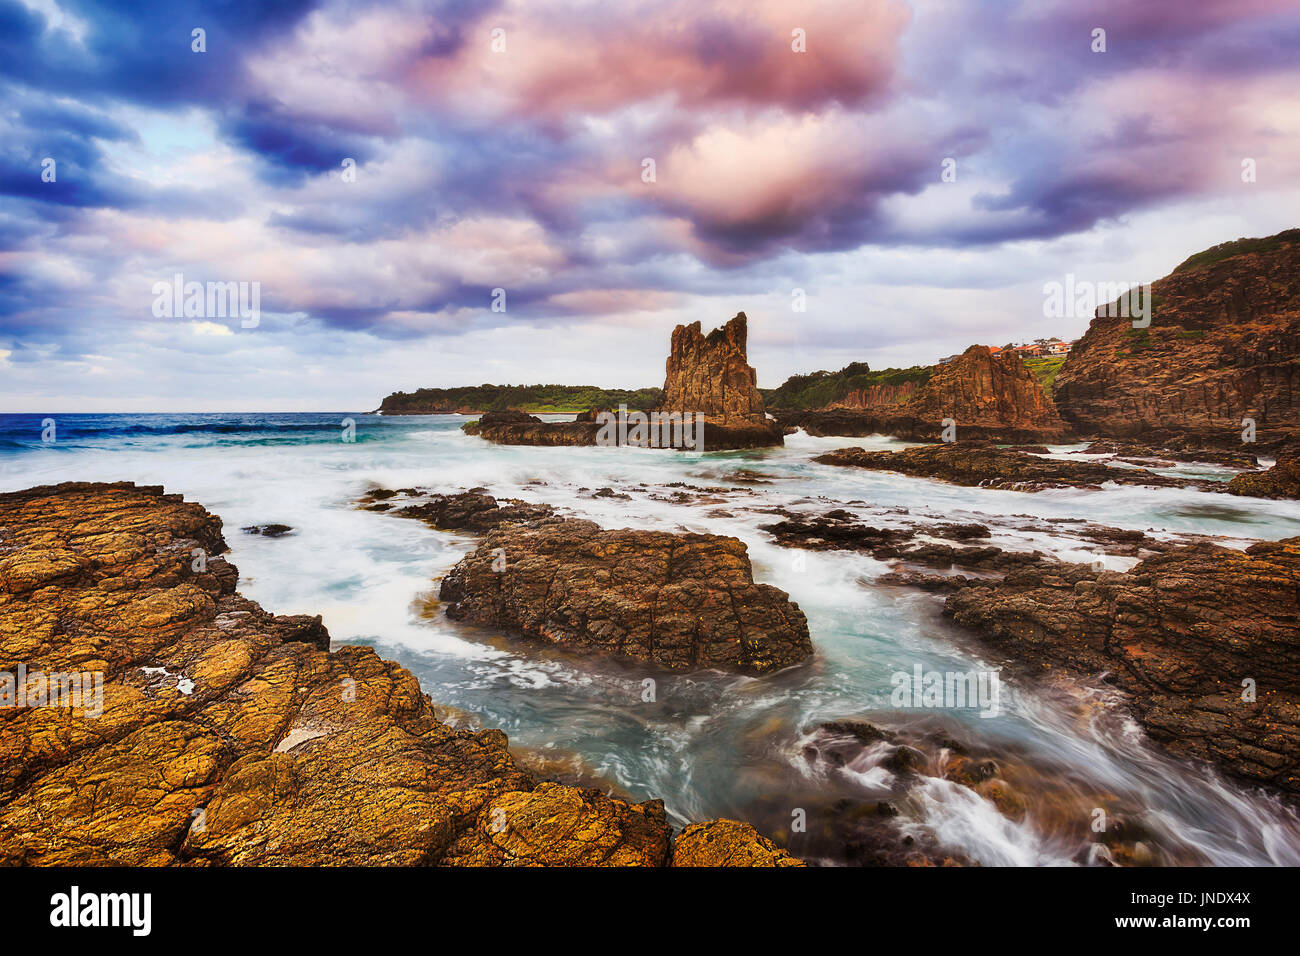 Rugged rocky coast around bombo beach in Kiama town on Australian Pacific shore. Blurred surf flows ashore eroding sandstone cliffs and cathedral boul - Stock Image